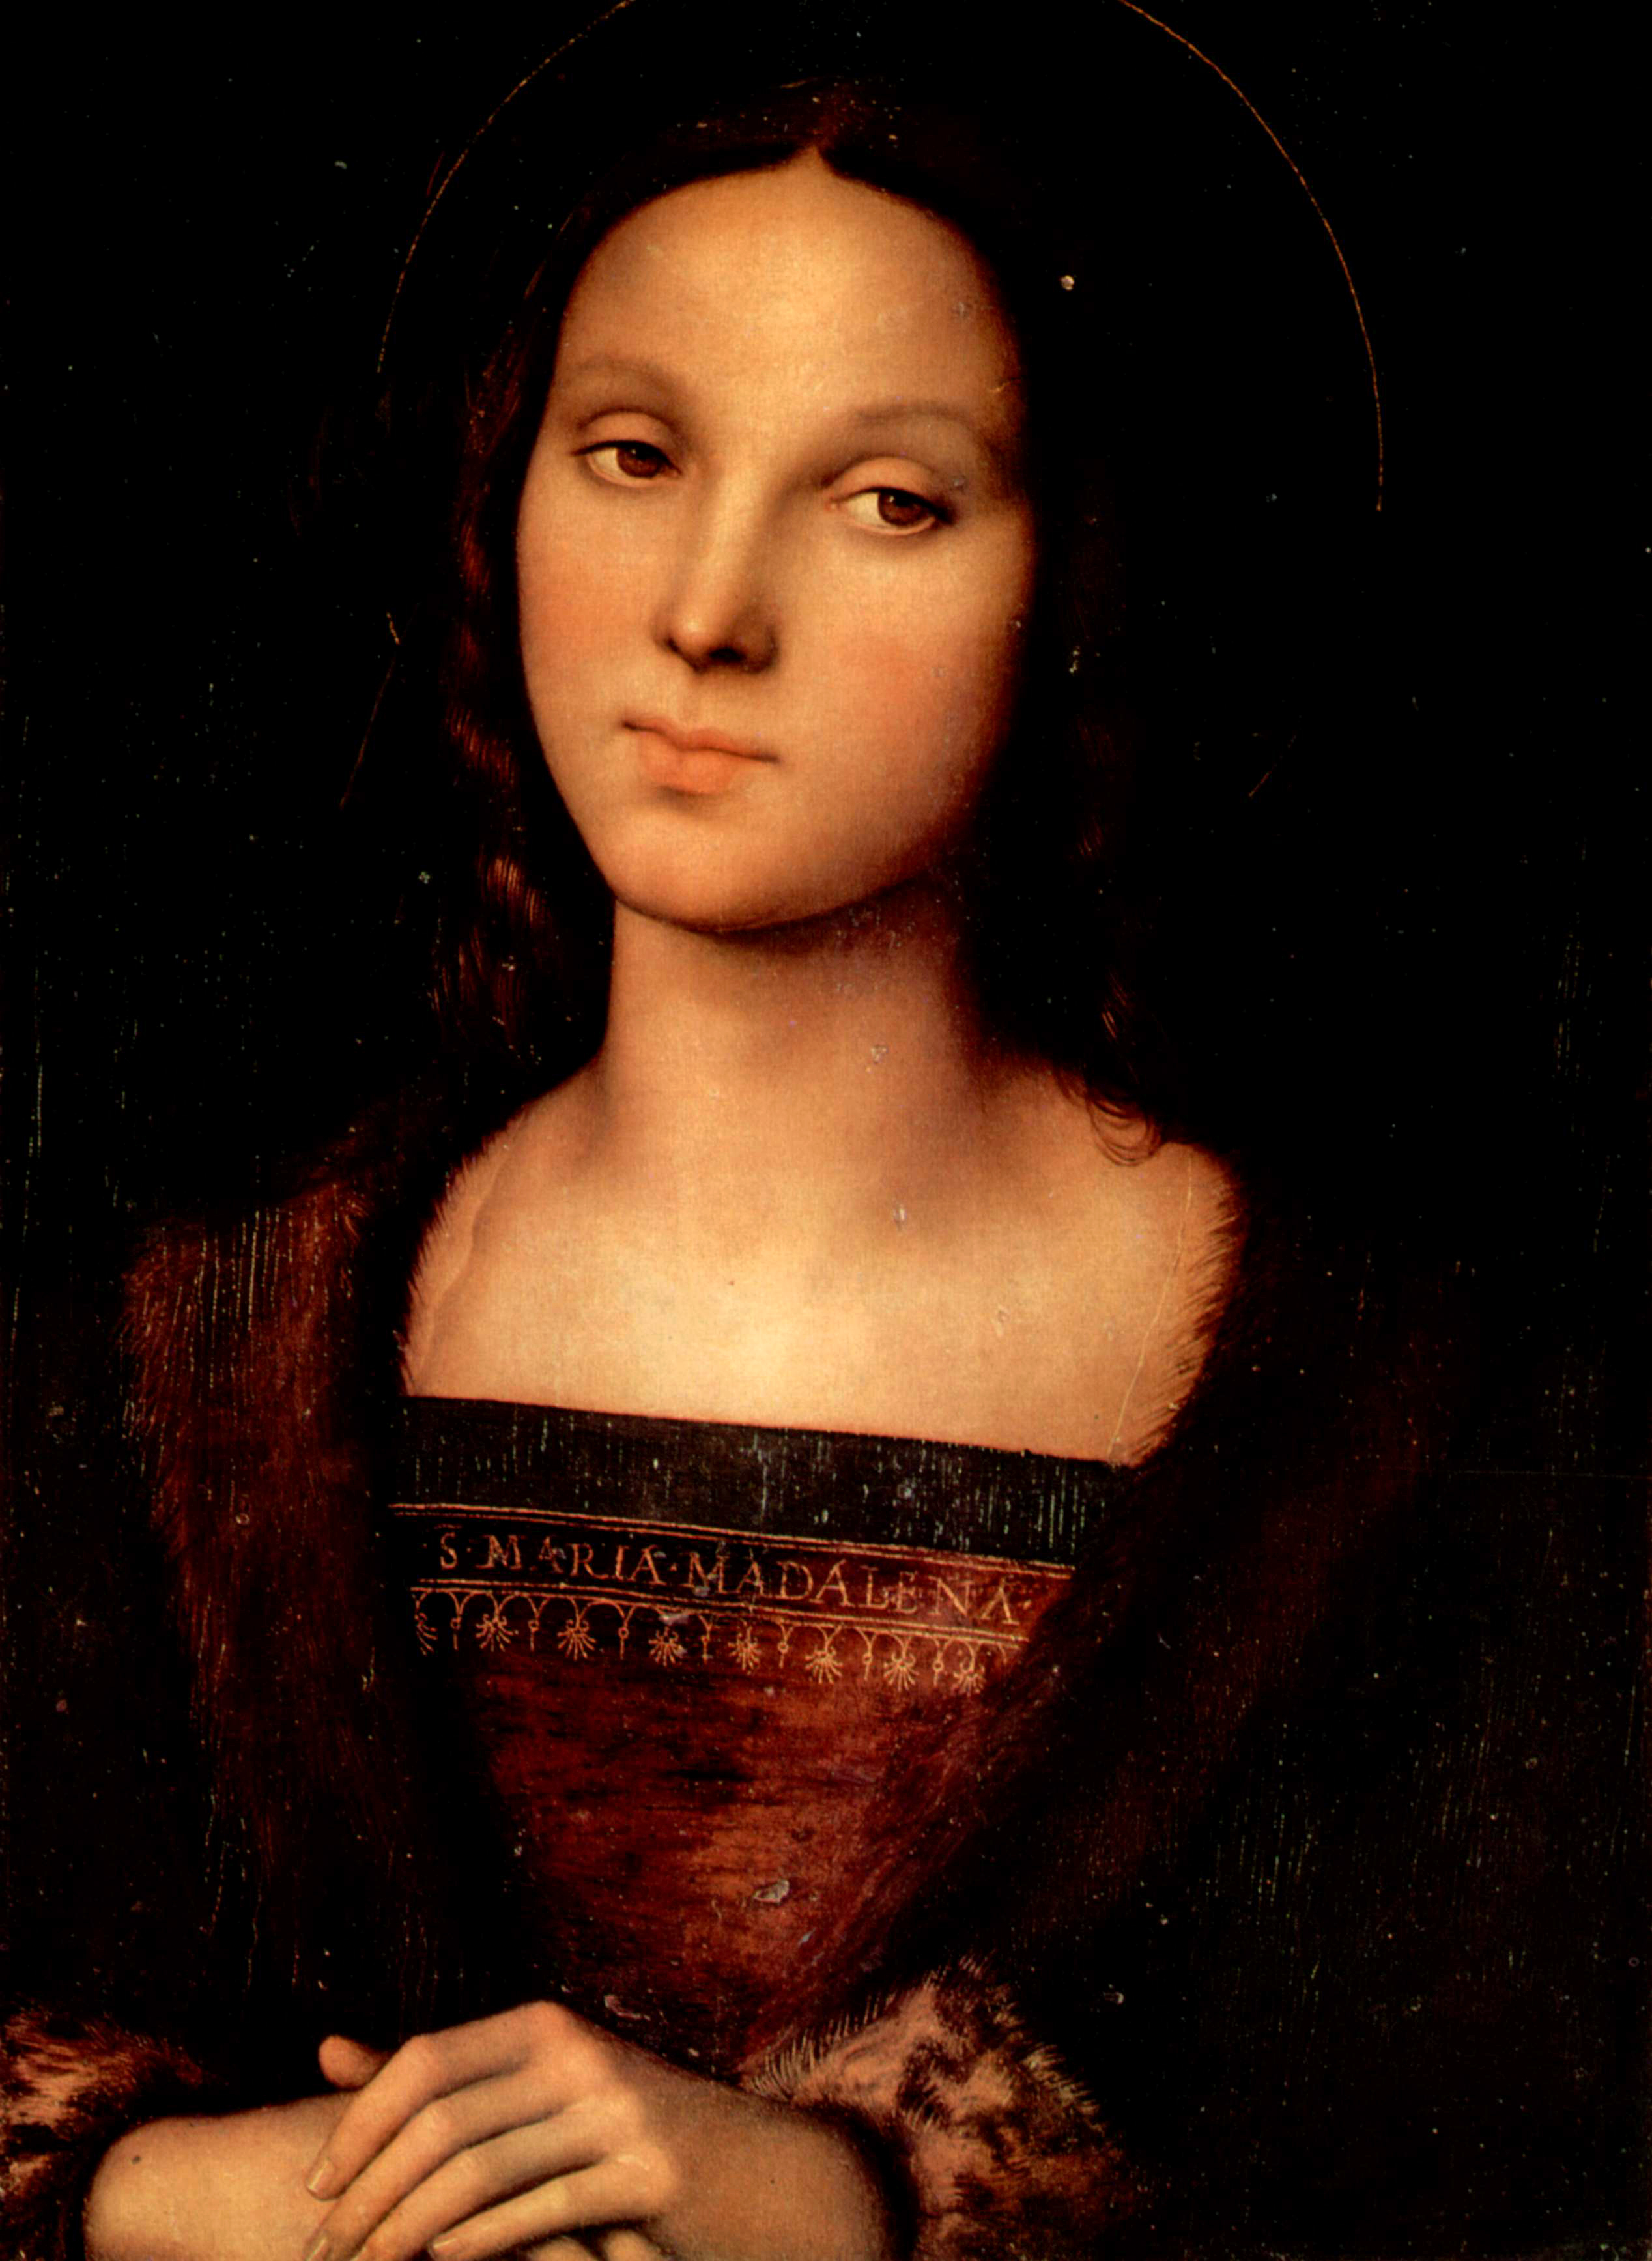 St. Mary Magdalene: Apostle of The Apostles